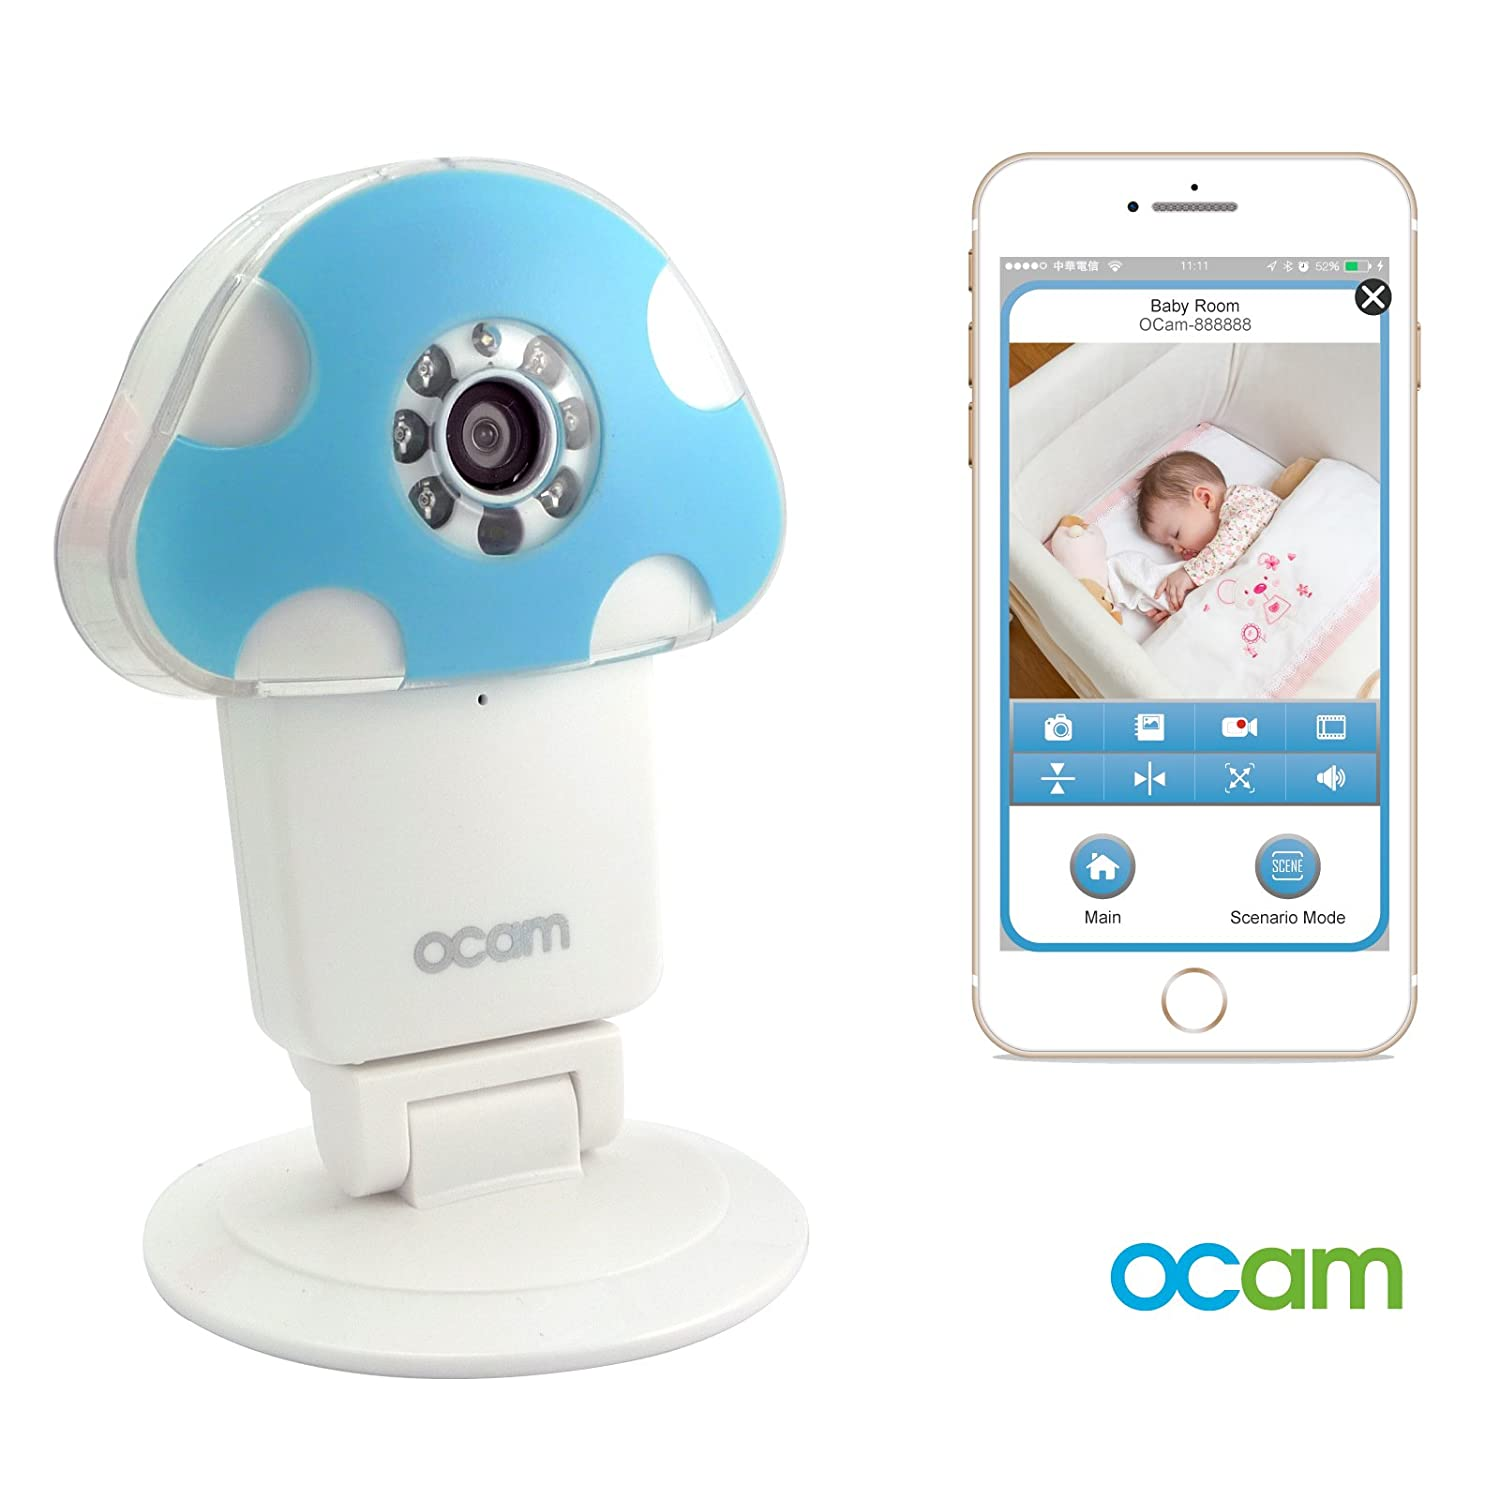 OCam-M1 Wi-Fi Wireless Baby Monitor Security Video Camera & Nanny Cam DVR iPhone iPad iOS Android(Blue) Ahoku Electronic Company